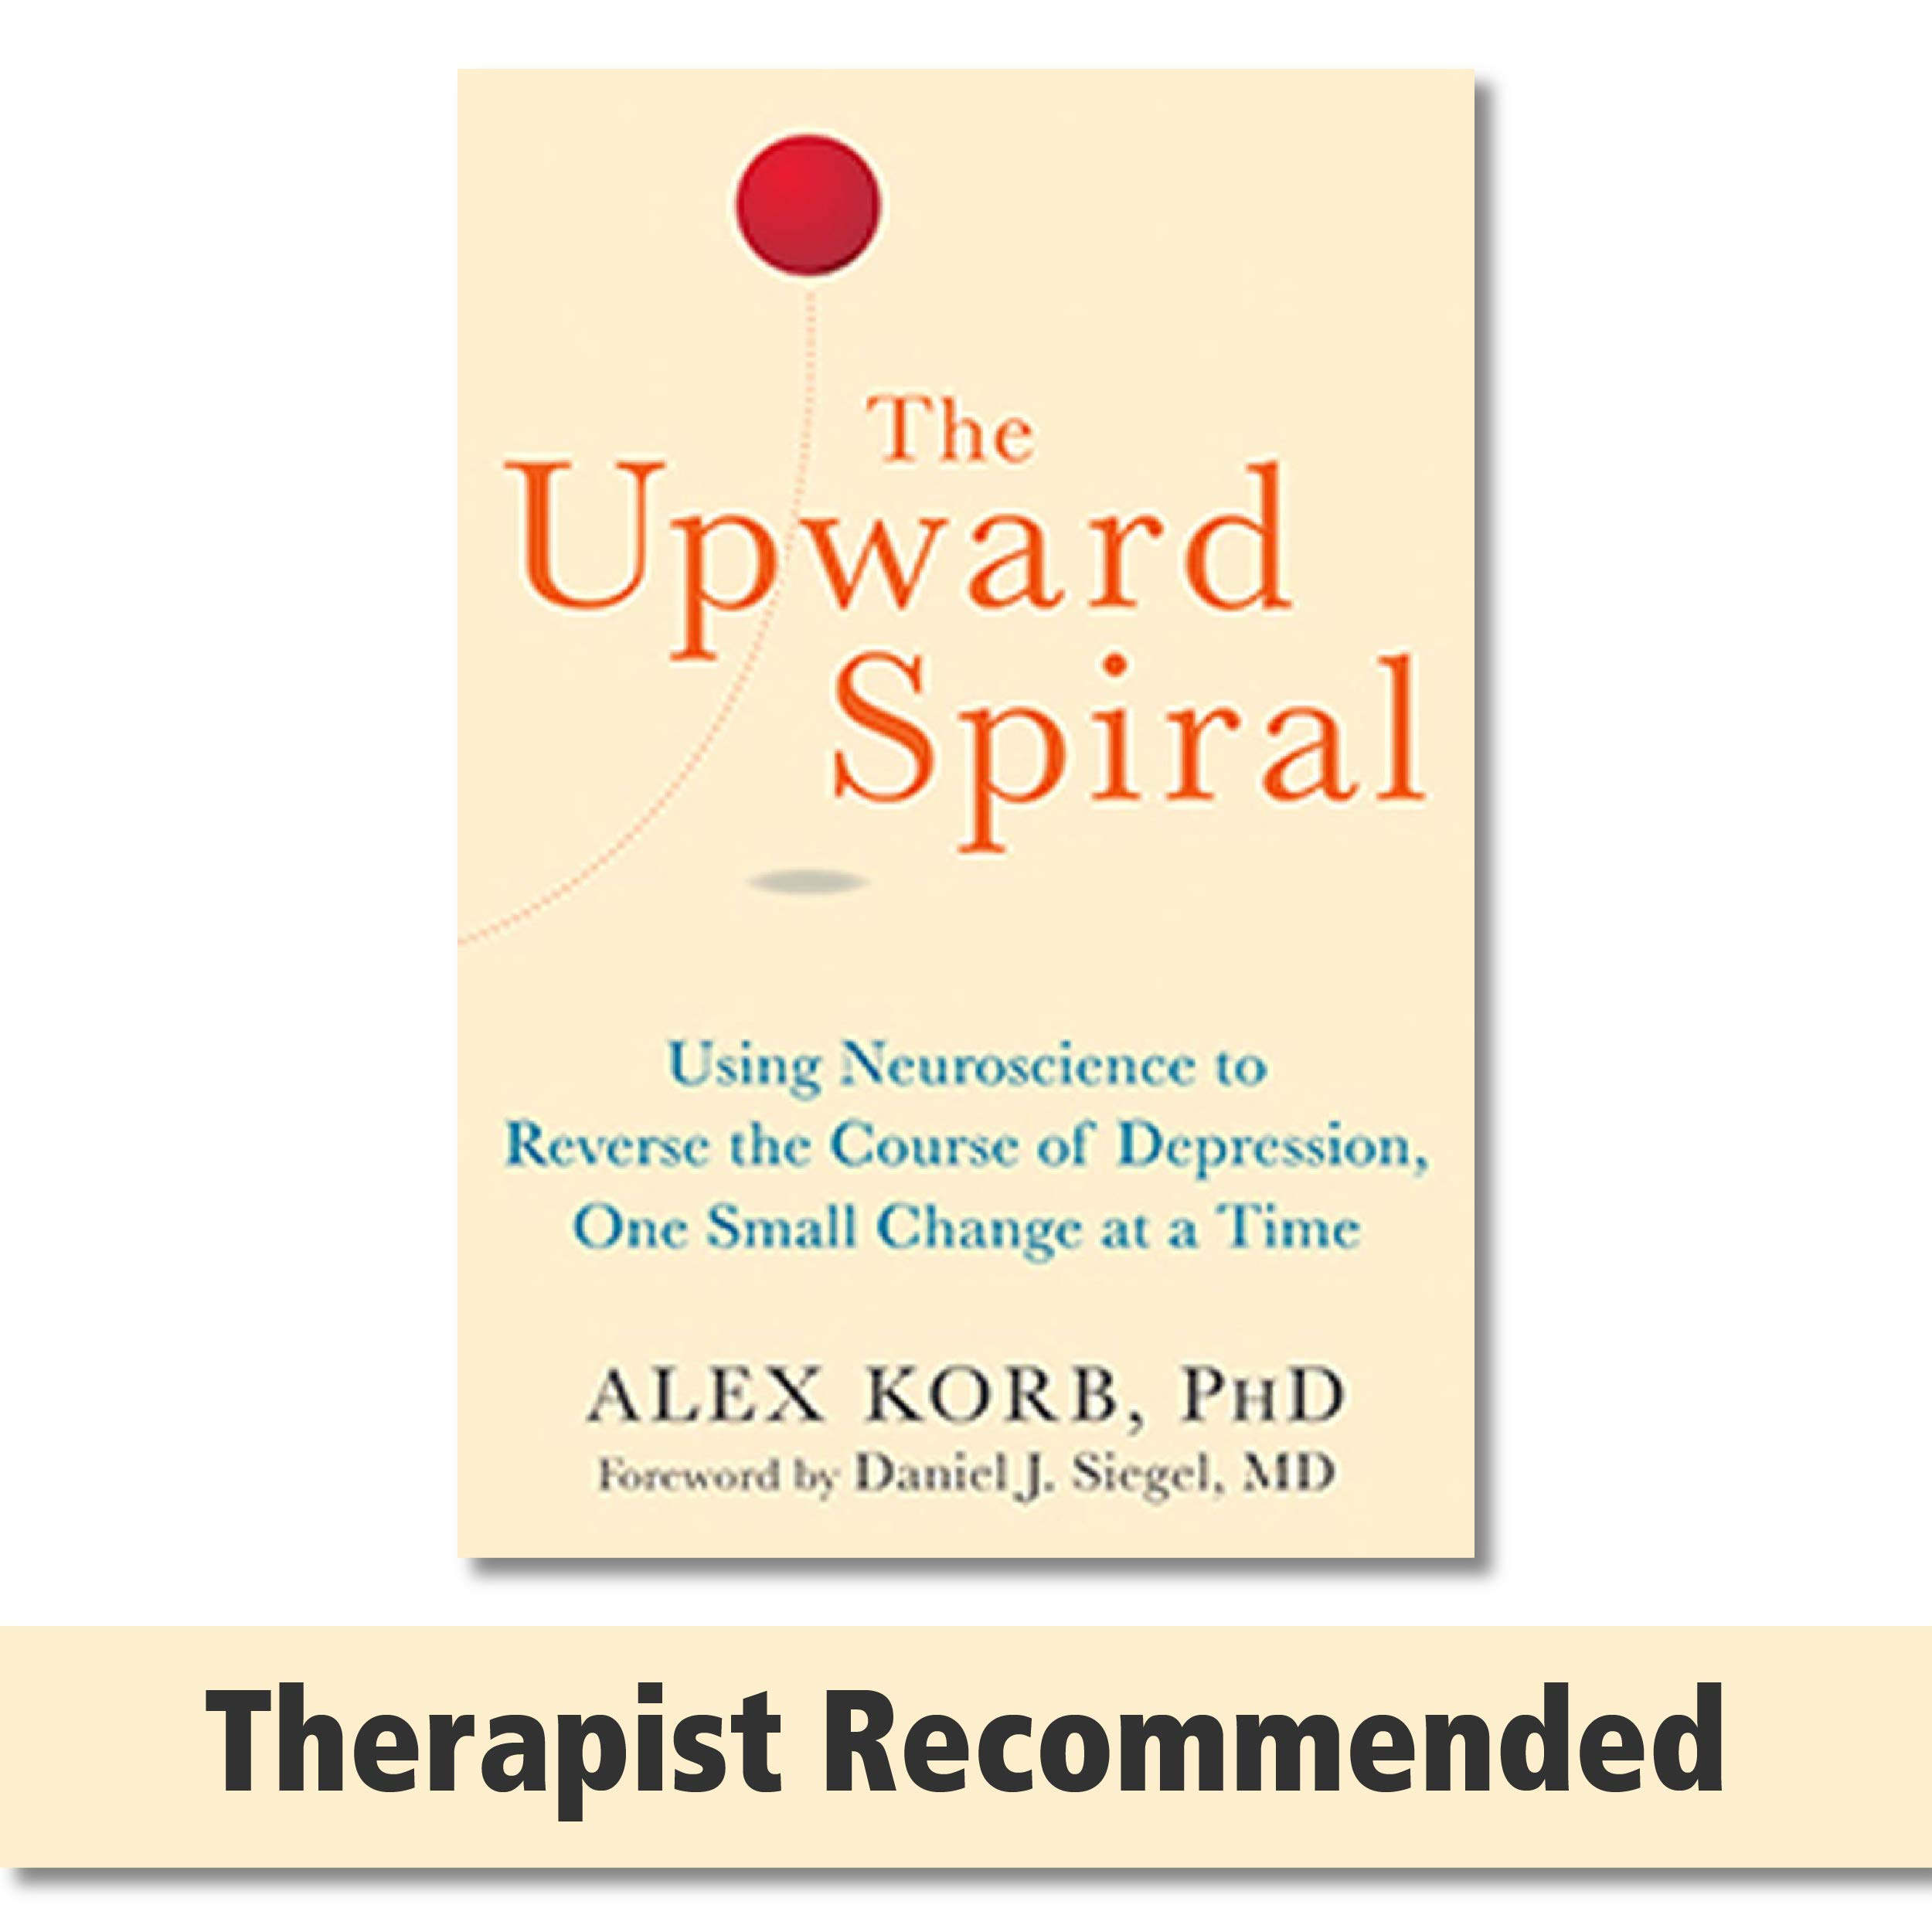 Image OfThe Upward Spiral: Using Neuroscience To Reverse The Course Of Depression, One Small Change At A Time